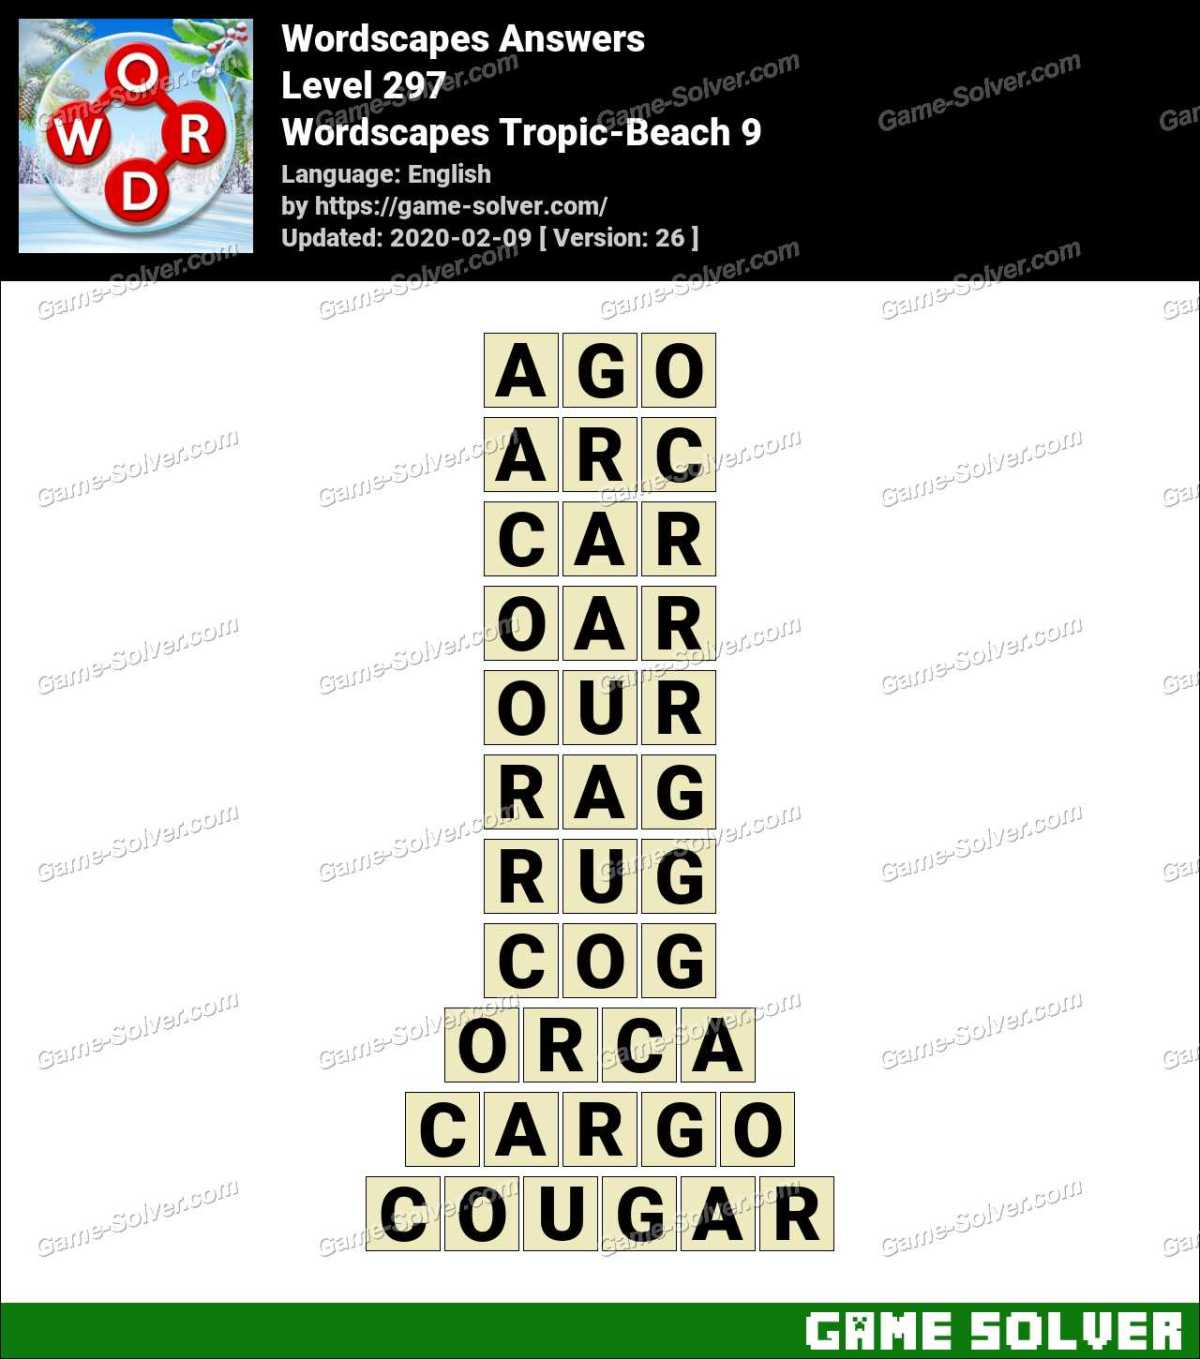 Wordscapes Tropic-Beach 9 Answers